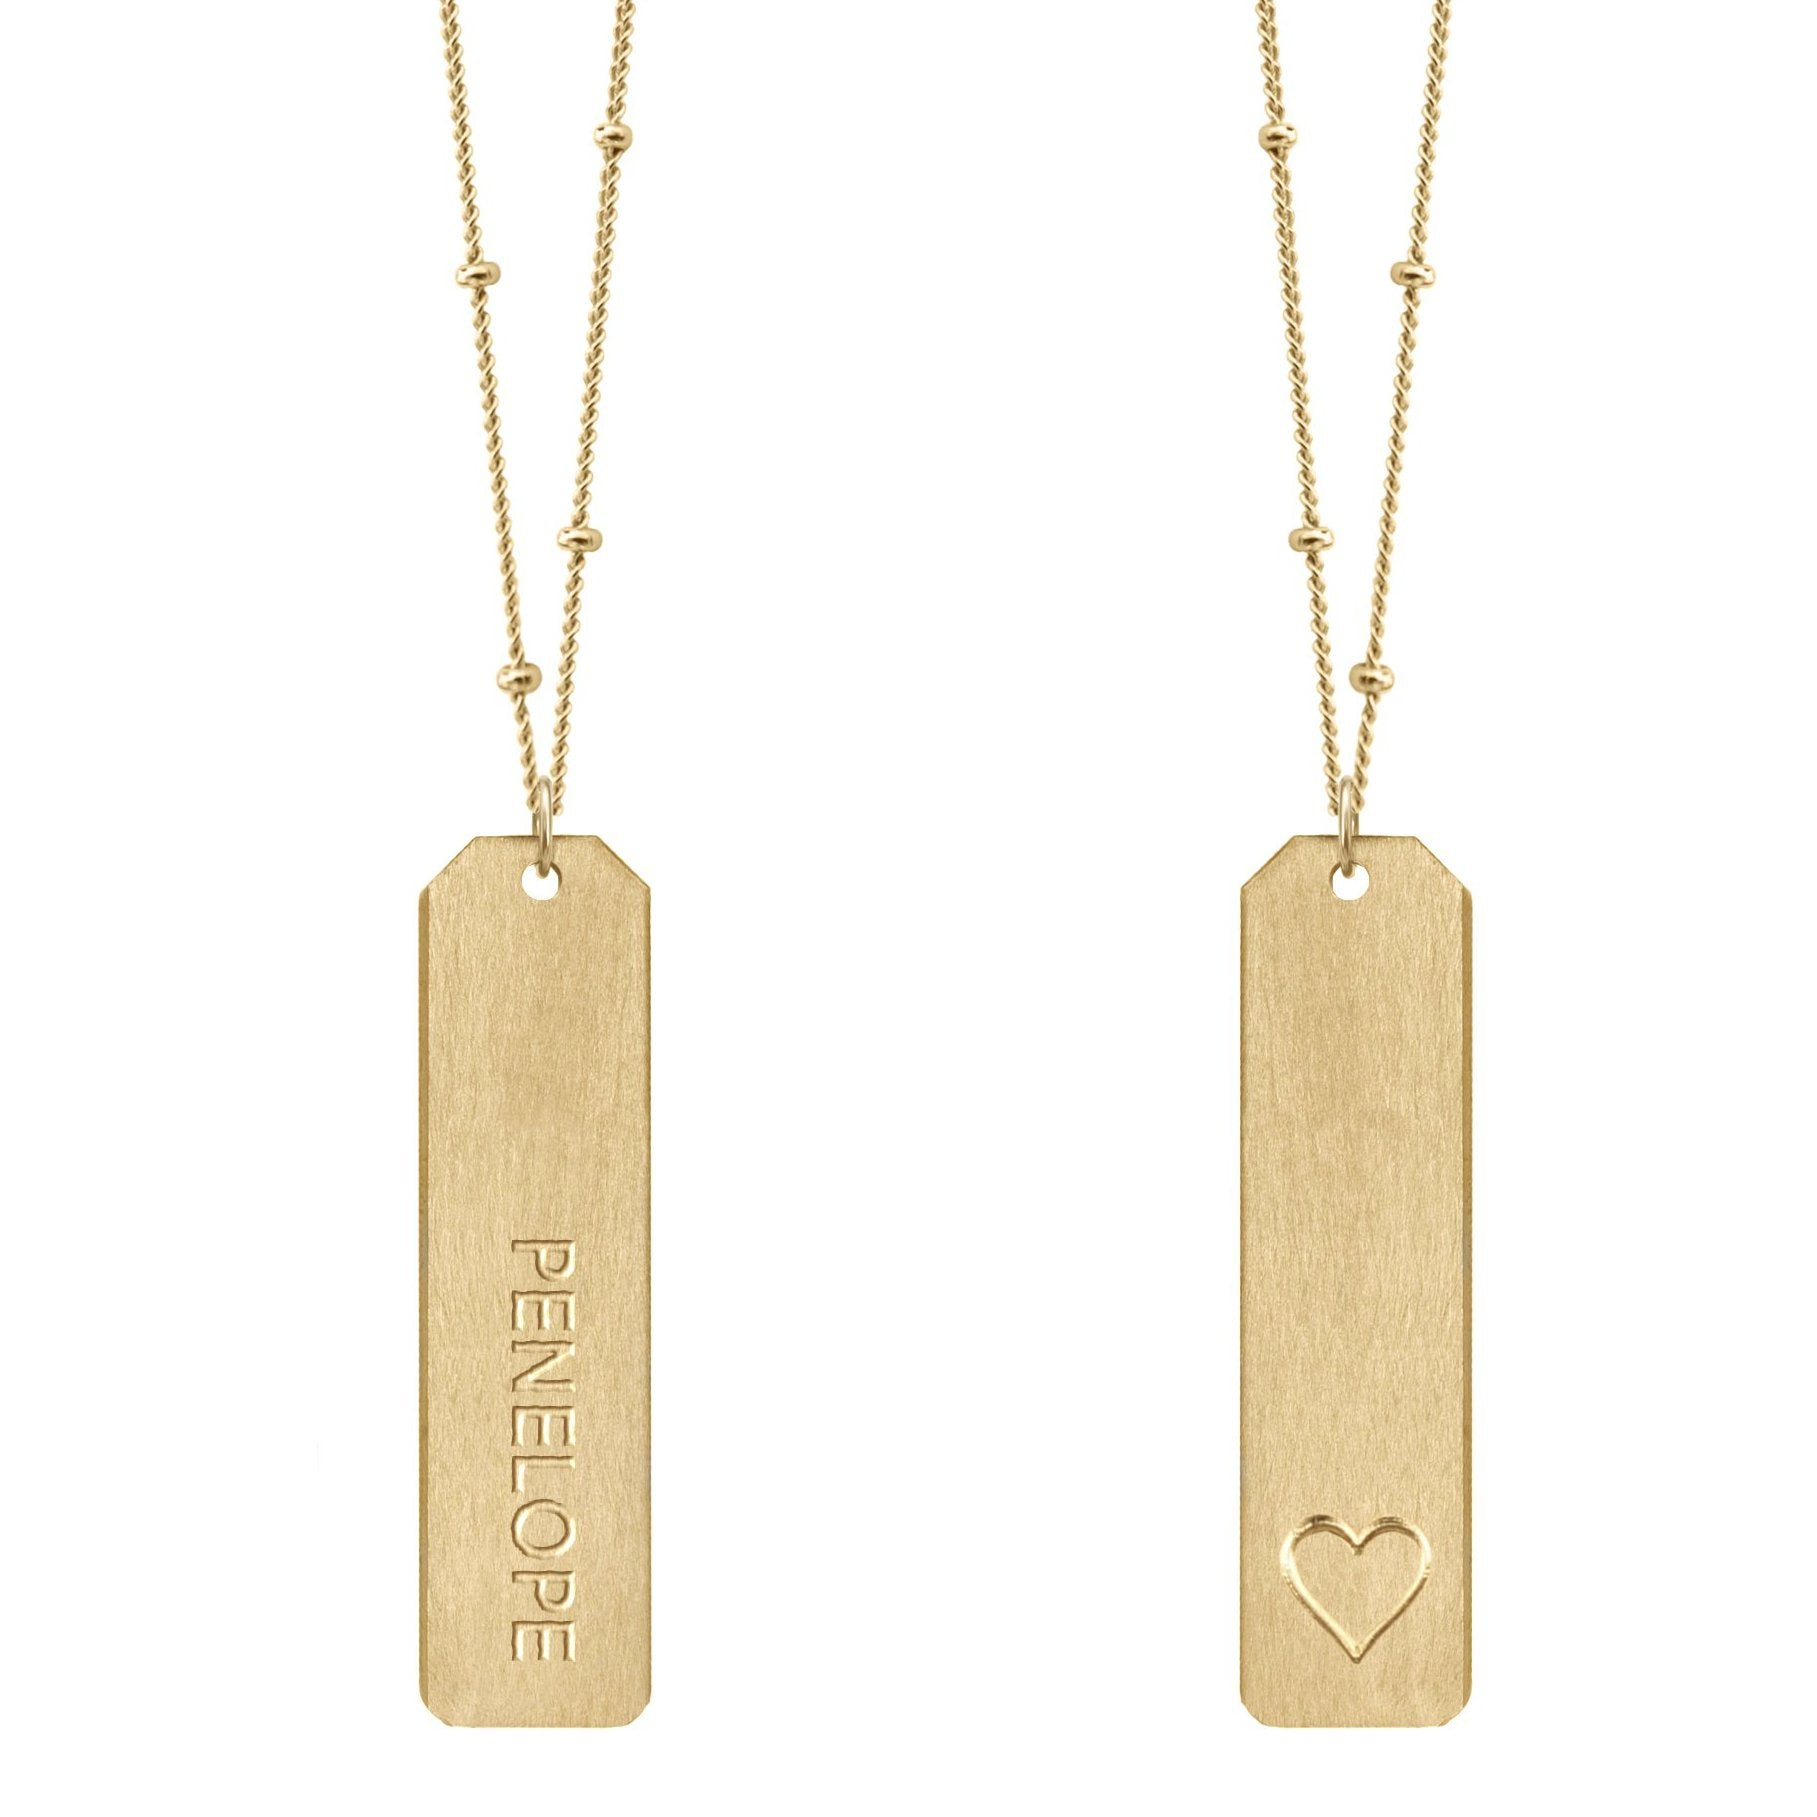 Love tag necklace design your own chelsea charles jewelry design your own long bar love tag necklace aloadofball Choice Image